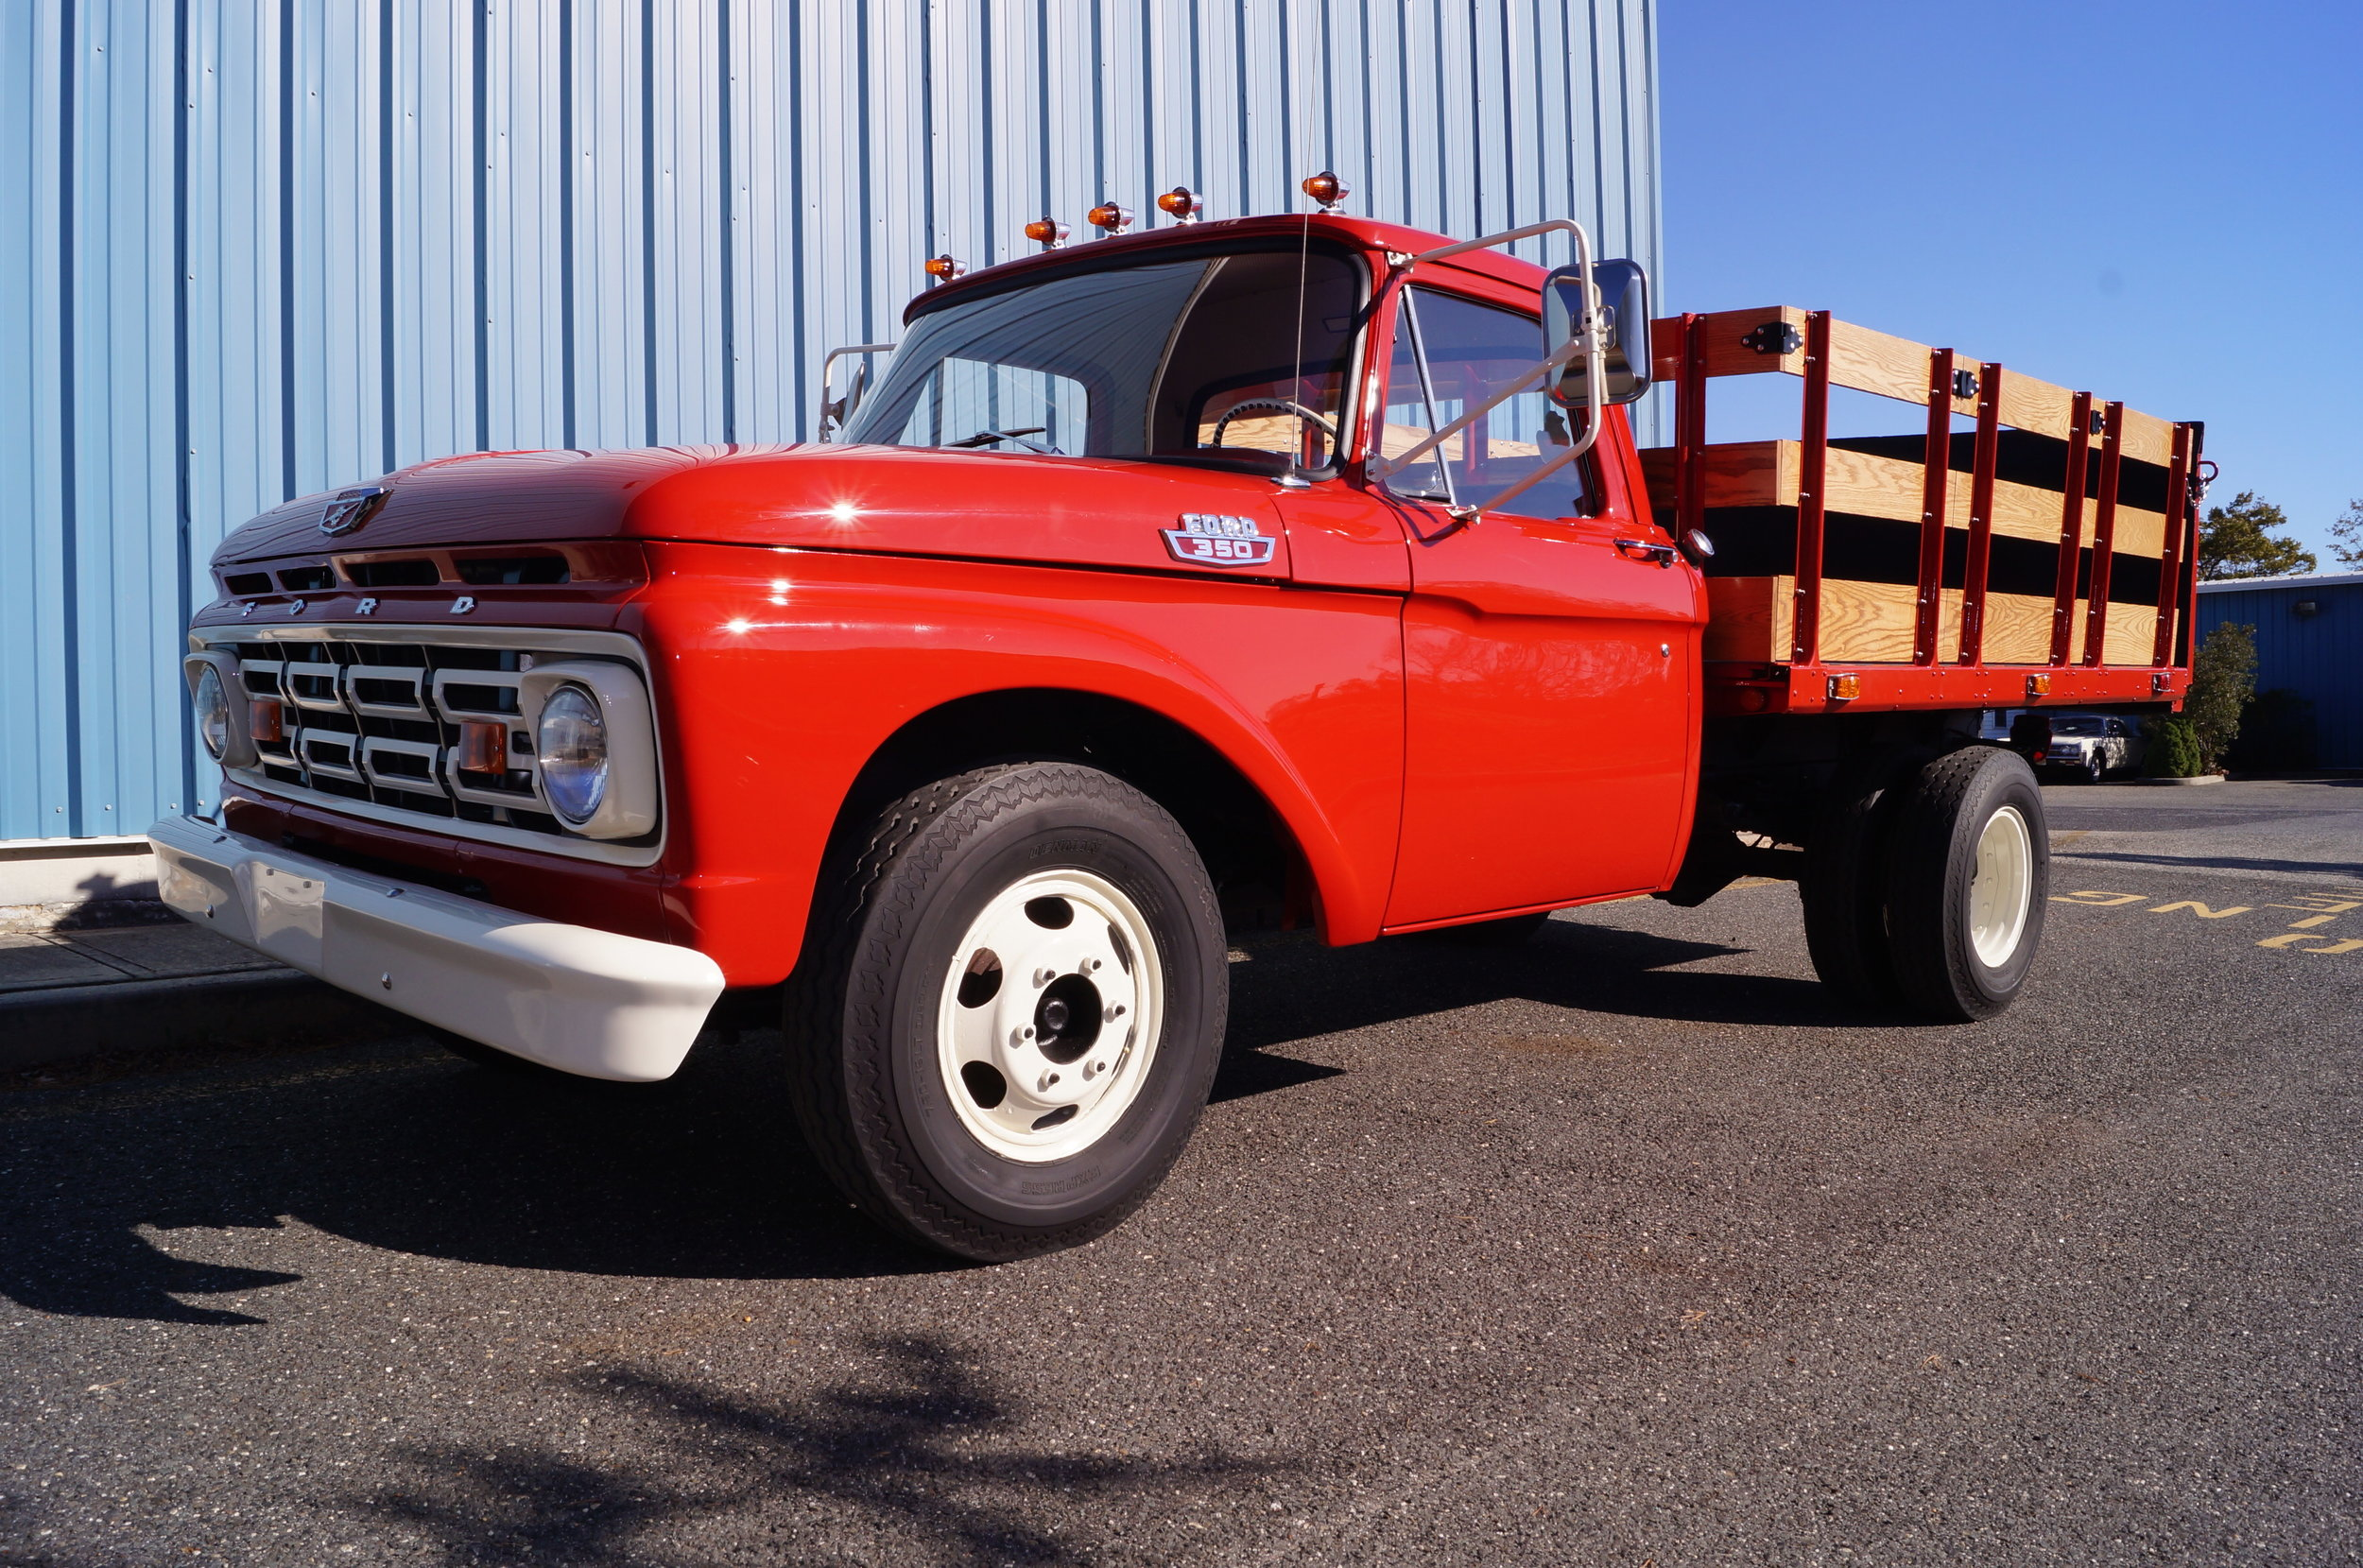 1964 Ford F350 - Not dad's ol' farm truck anymore! Sometimes when we lose a loved one, the best way to honor and memorialize them is through something that makes us feel connected to them still. This restoration is a son's loving tribute to his father, and we were honored to be able to resurrect this ol' truck to a better-than-new condition. While we hope that there are many new memories to be made, we also hope that its hauling hay days are over. No more chores on the farm for this former workhorse. It's time to enjoy a pampered retirement!